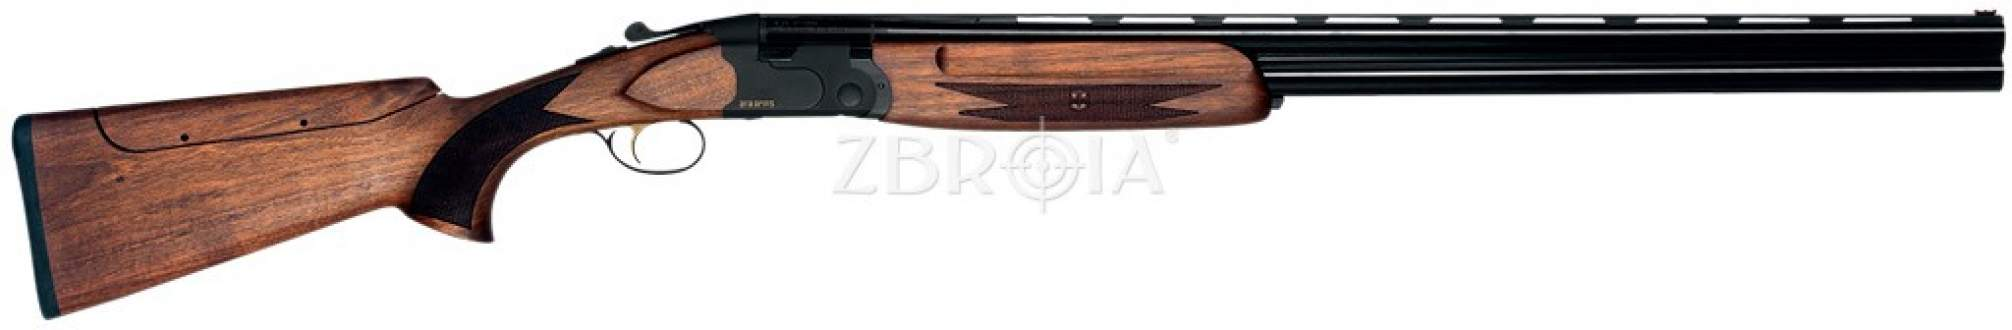 Ружье Ata Arms SP Sporter кал. 12/76